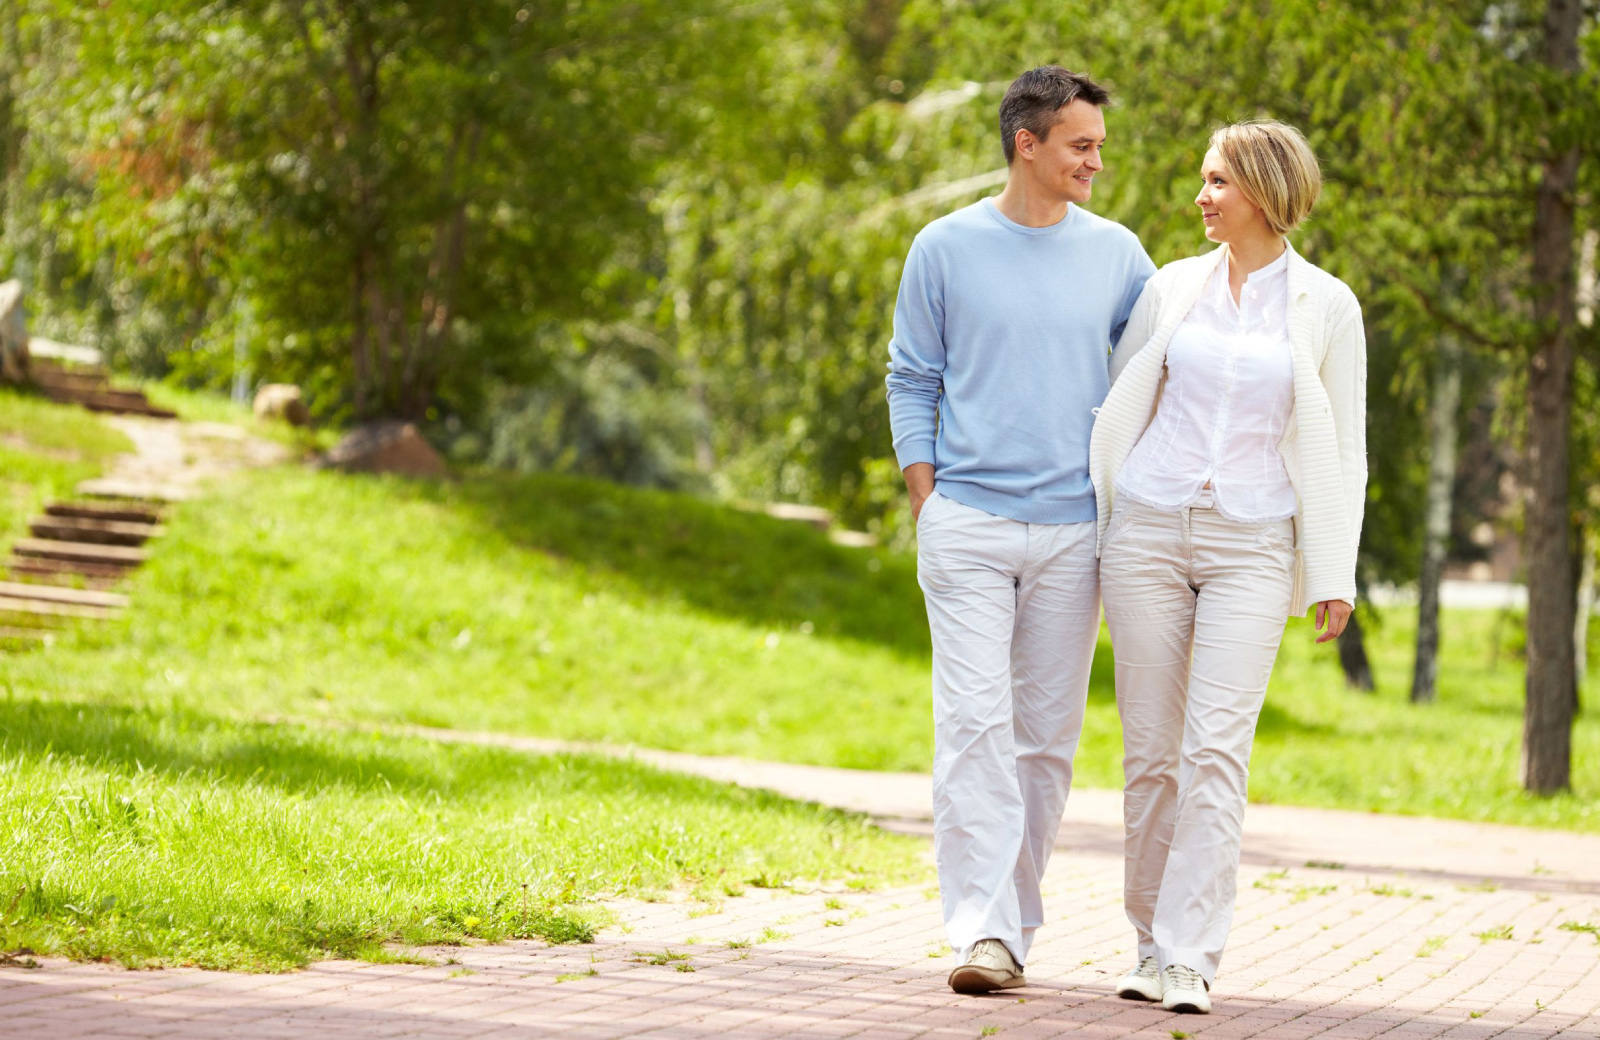 couple strolling in a park altana glendale